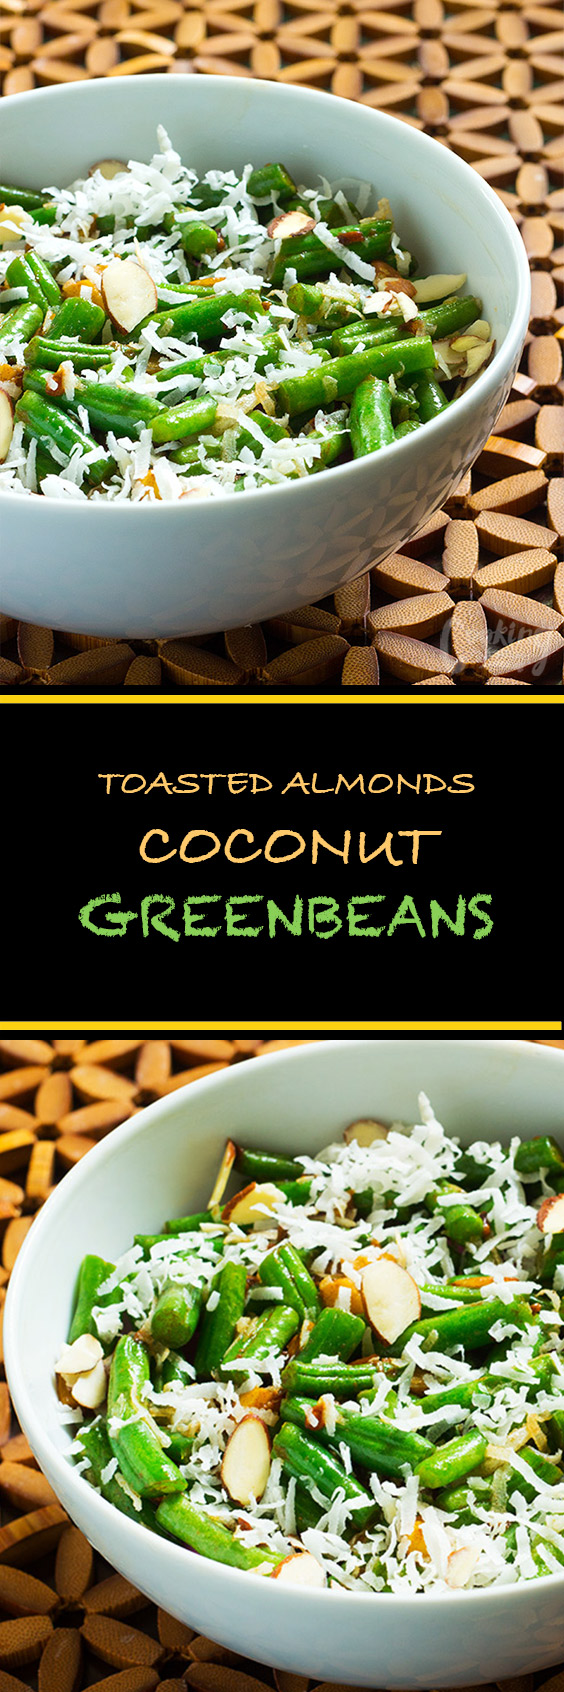 Toasted Almond Coconut Green Beans are deliciously crunchy and when loaded with coconut flakes, almonds and ginger they are out of this world.